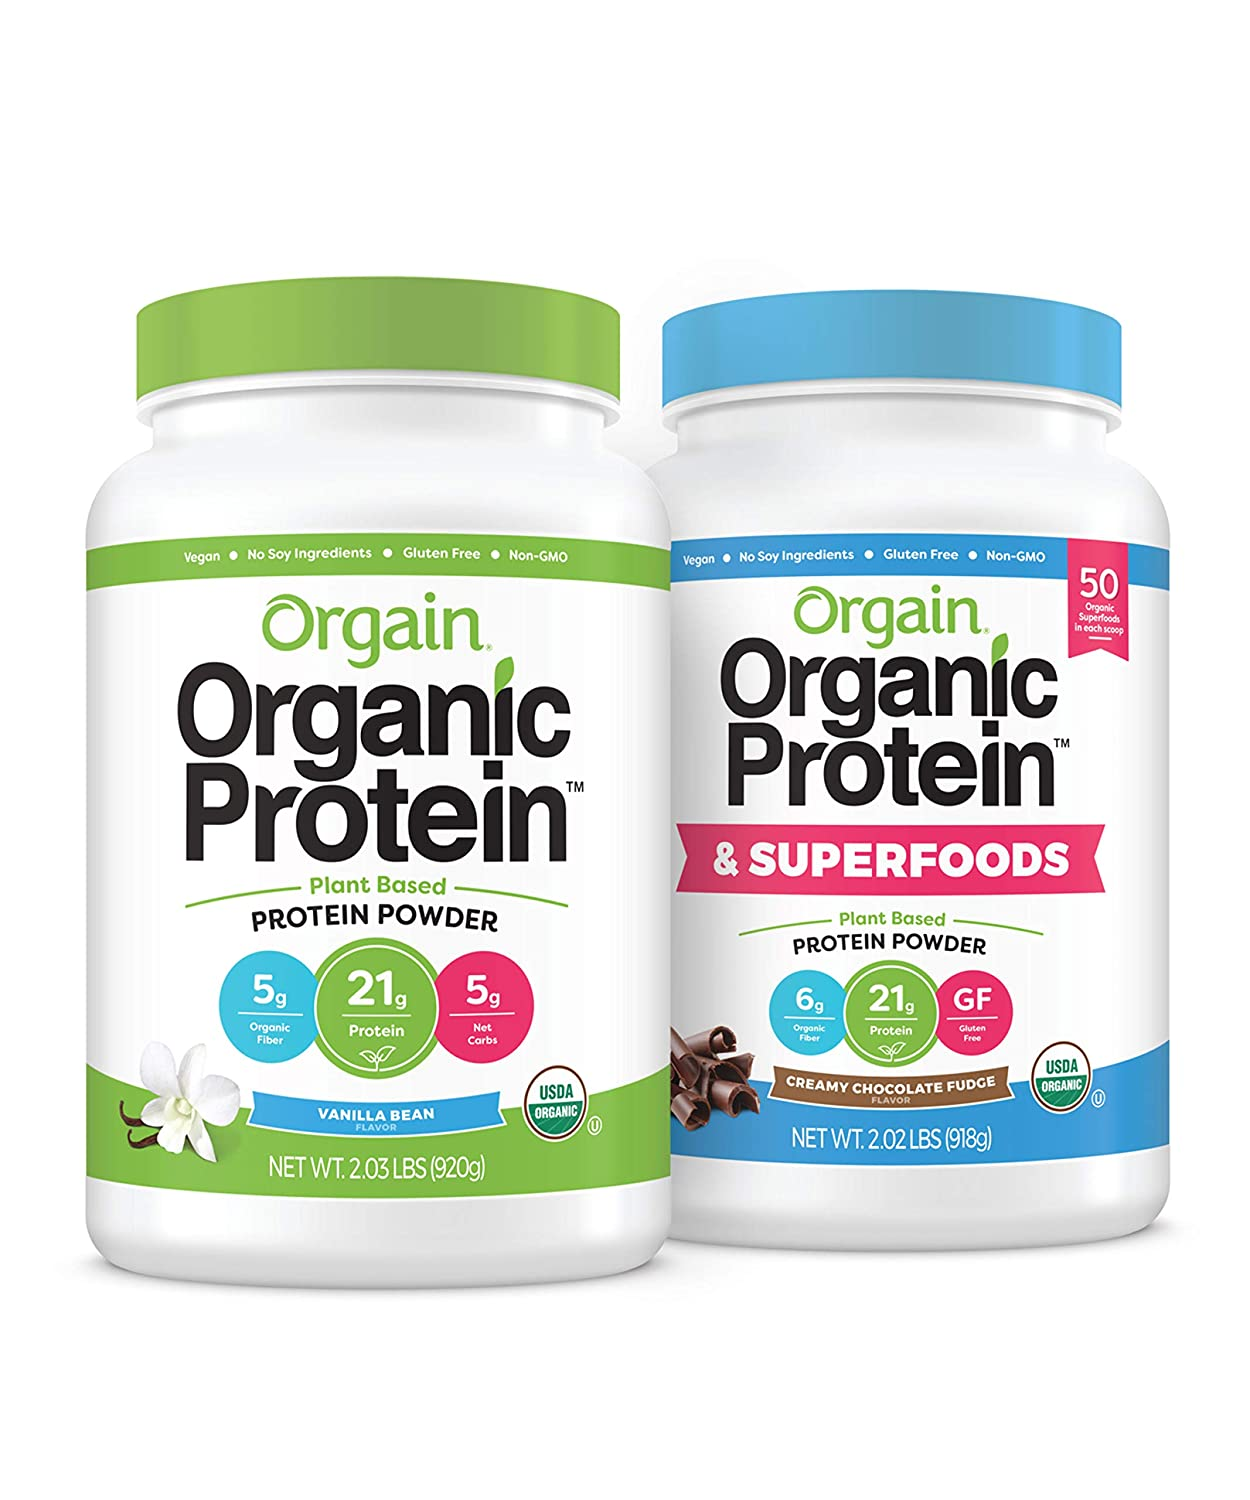 Orgain Bundle - Vanilla Protein Powder and Chocolate Protein & Superfoods Powder - Vegan, Made without Dairy, Gluten and Soy, Non-GMO